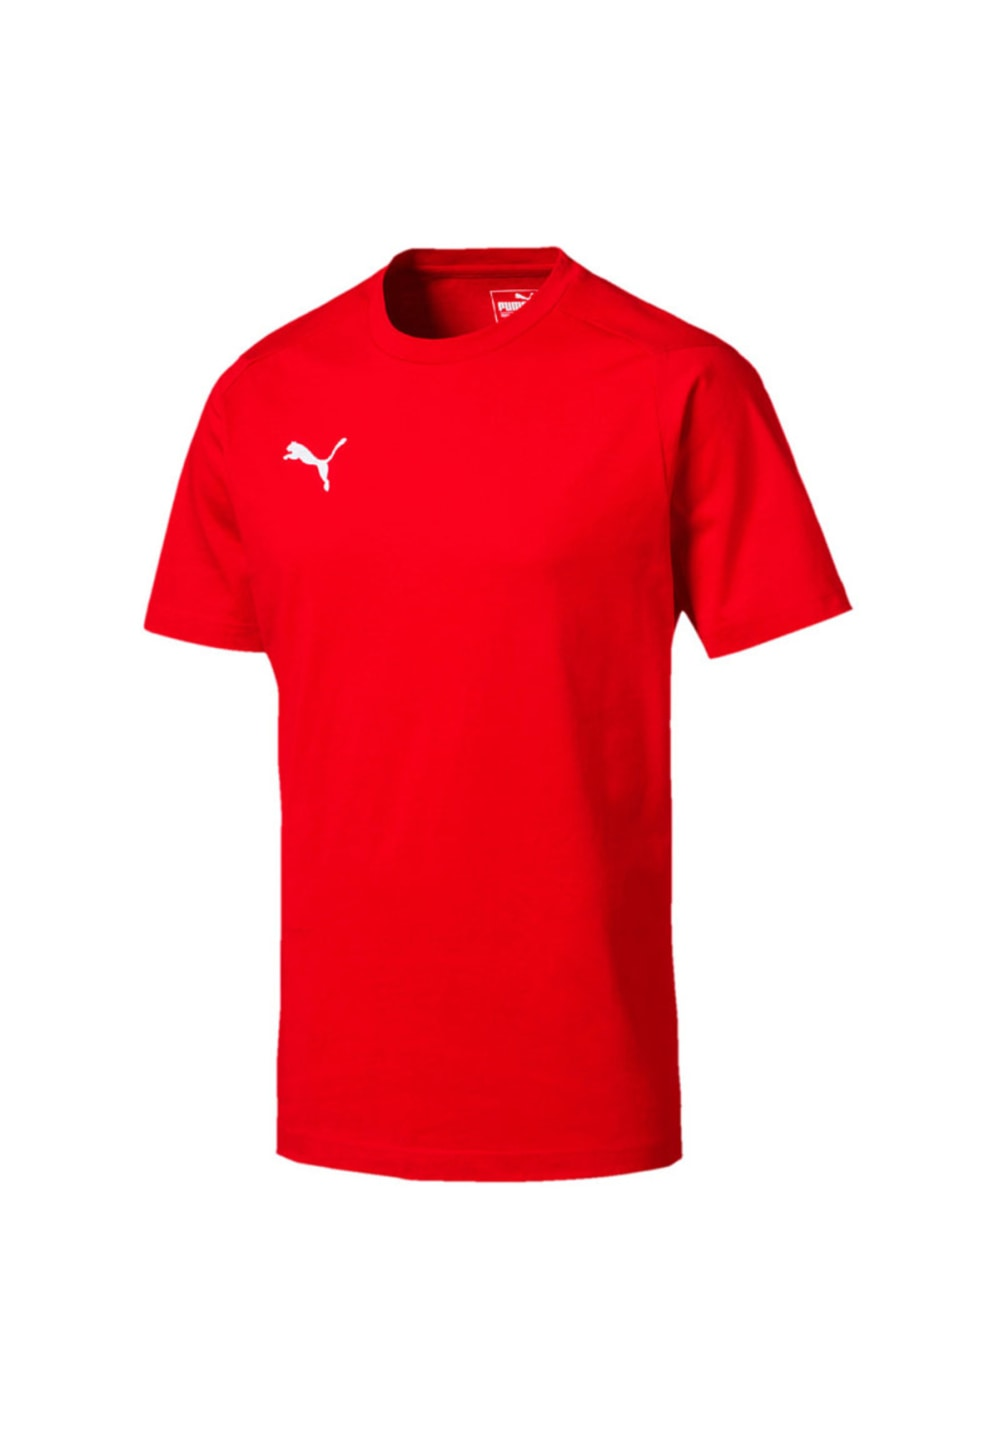 3be9adfb84a4 Puma Liga Casual Long Sleeve Tee - Running tops for Men - Red | 21RUN